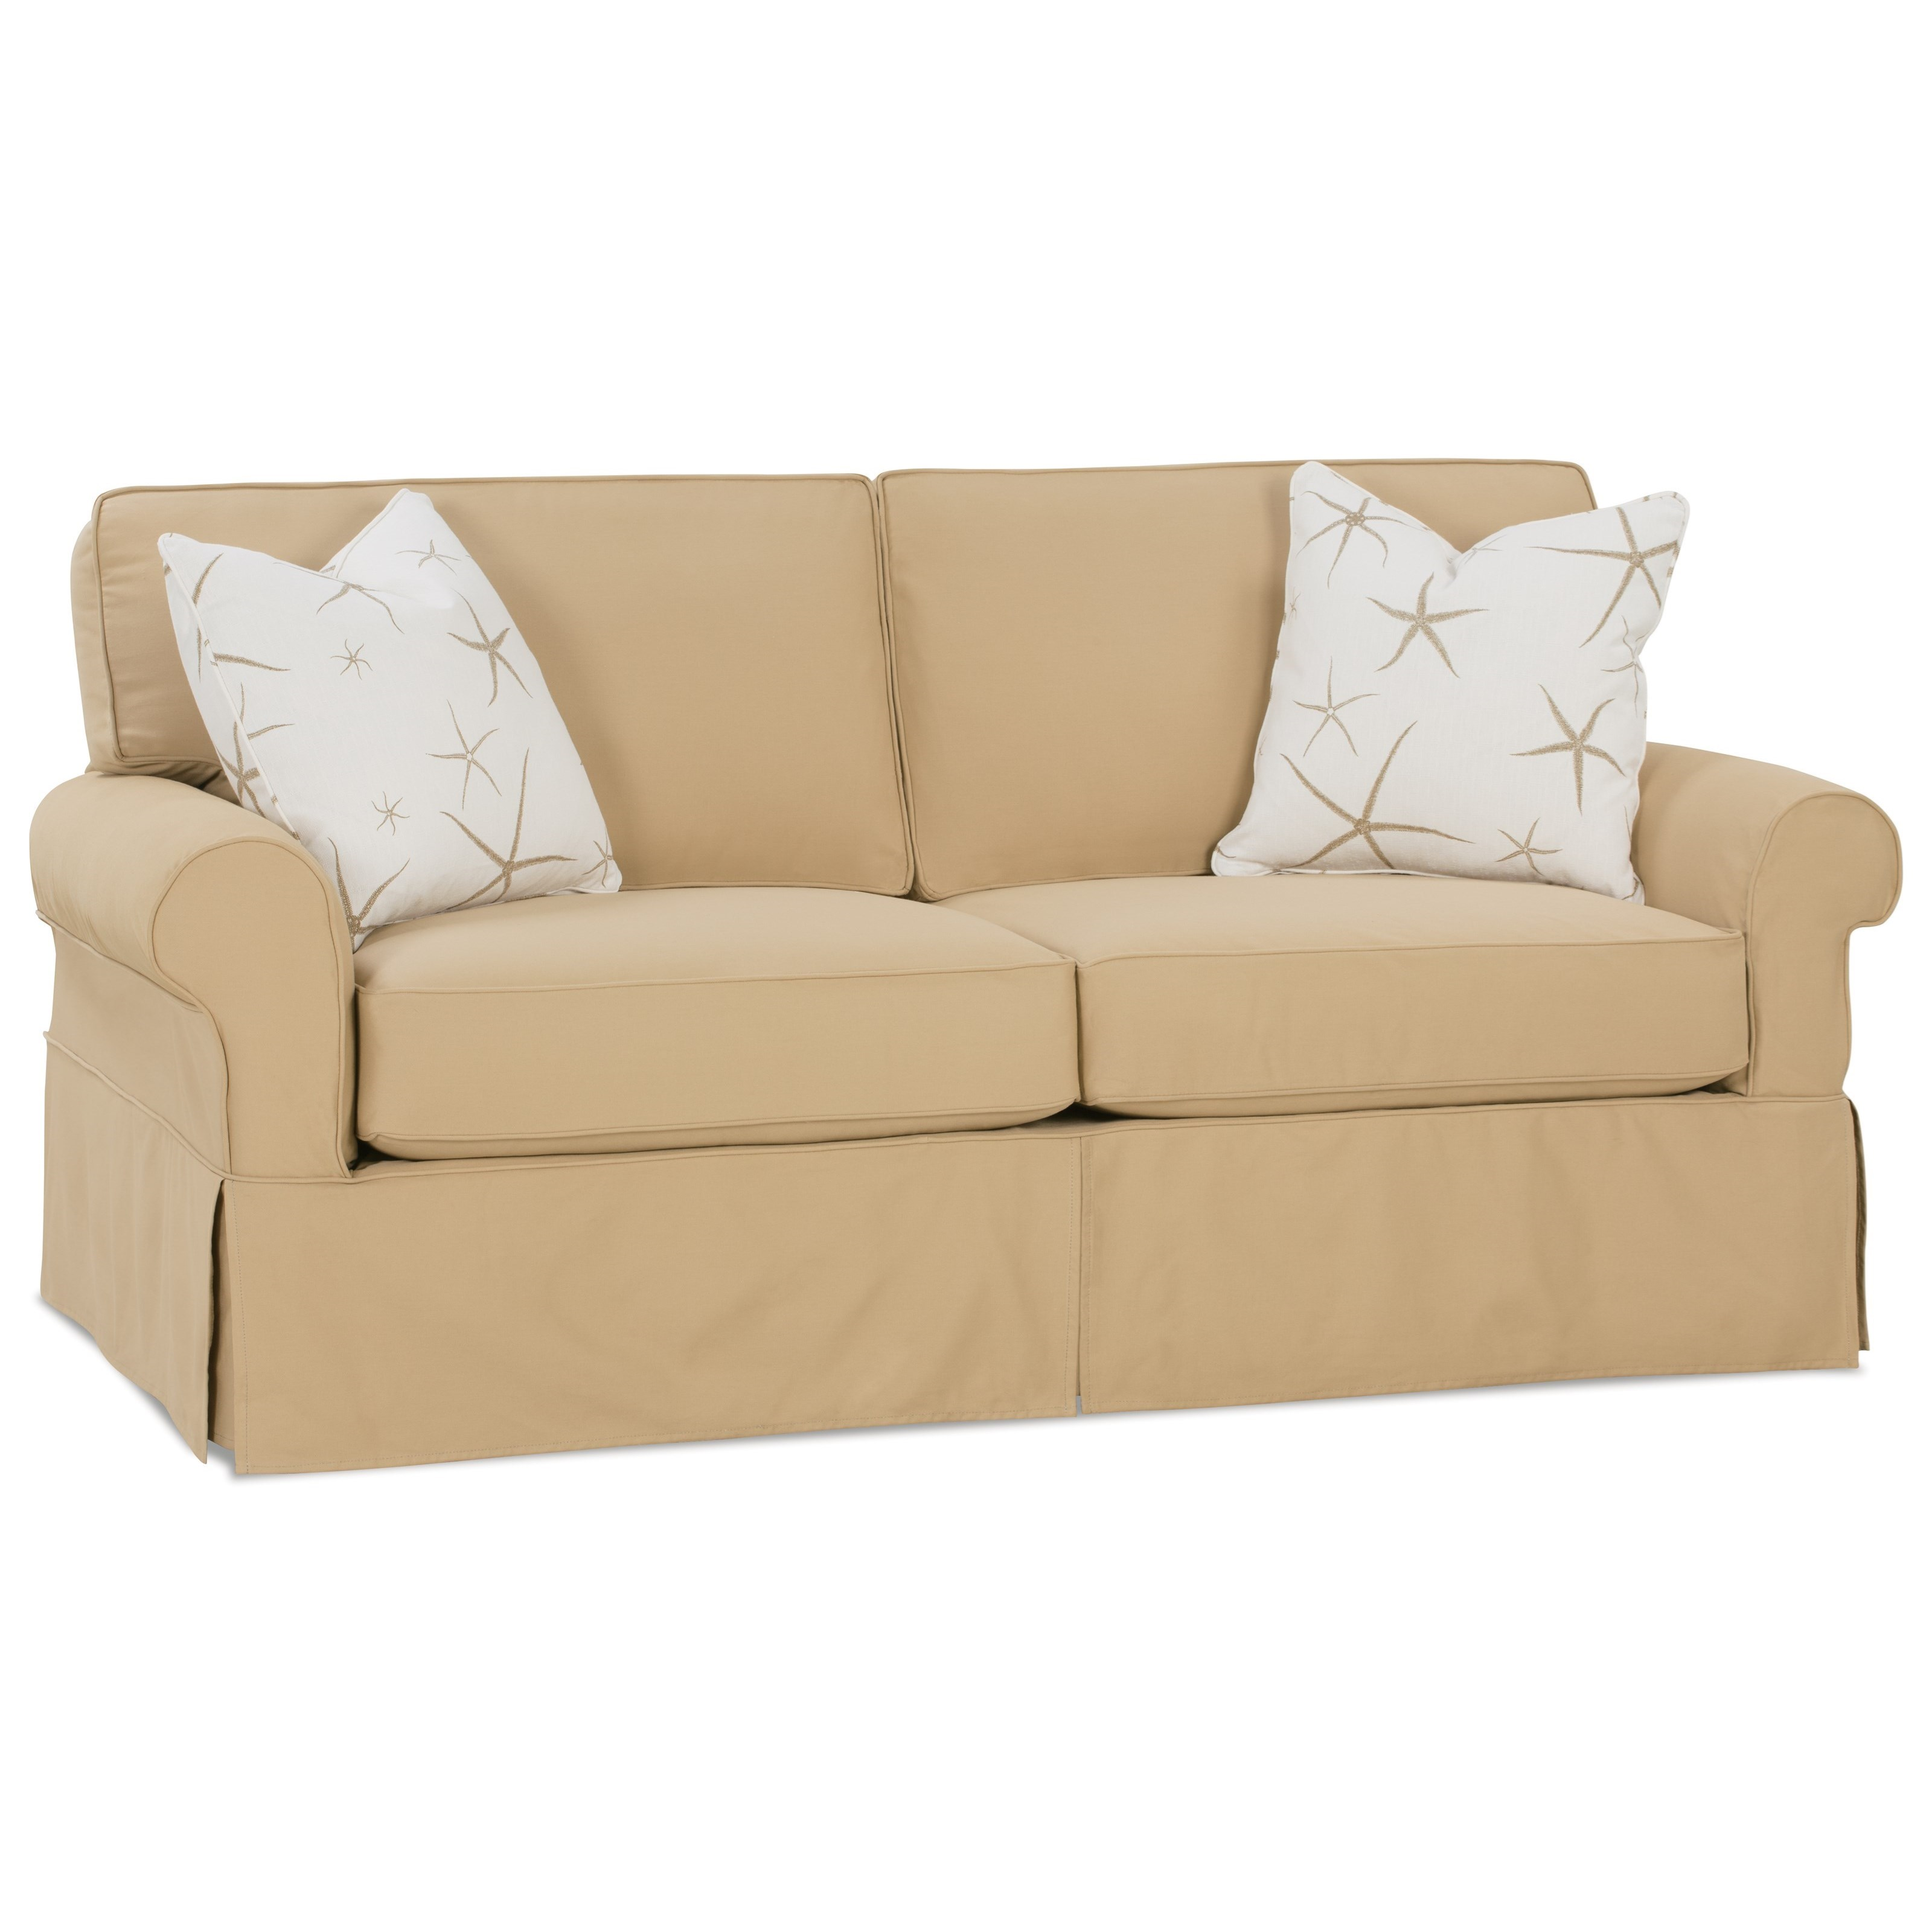 Rowe Nantucket 78quot Two Cushion Slipcover Sofa Belfort  : products2Frowe2Fcolor2Fnantucket20a910a910r 001 b2 from www.belfortfurniture.com size 3200 x 3200 jpeg 502kB